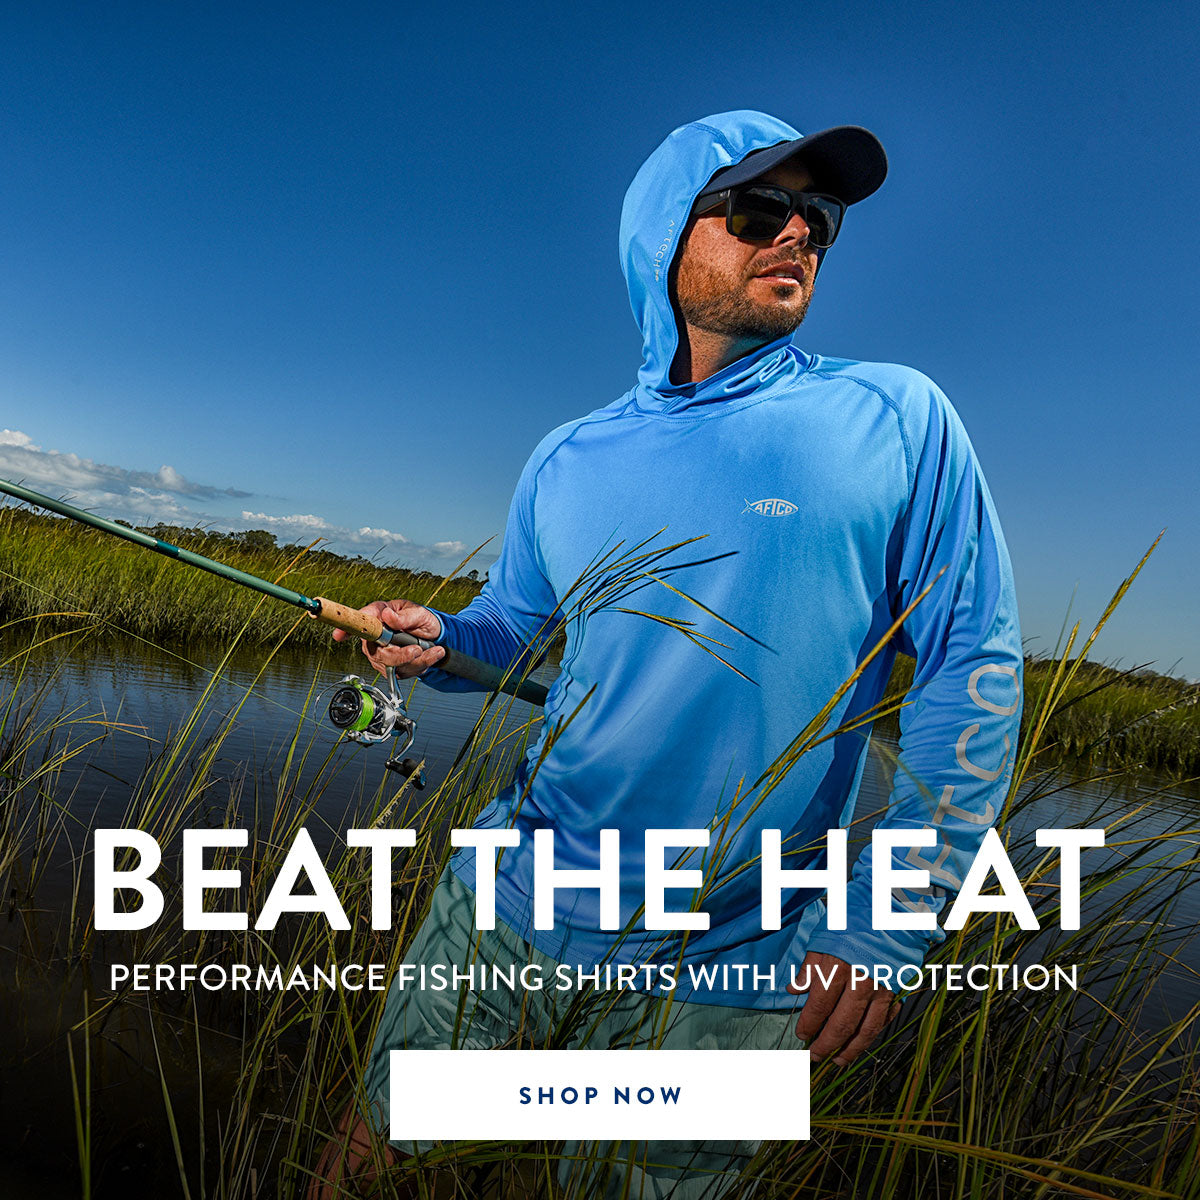 Beat the heat with performance fishing shirts